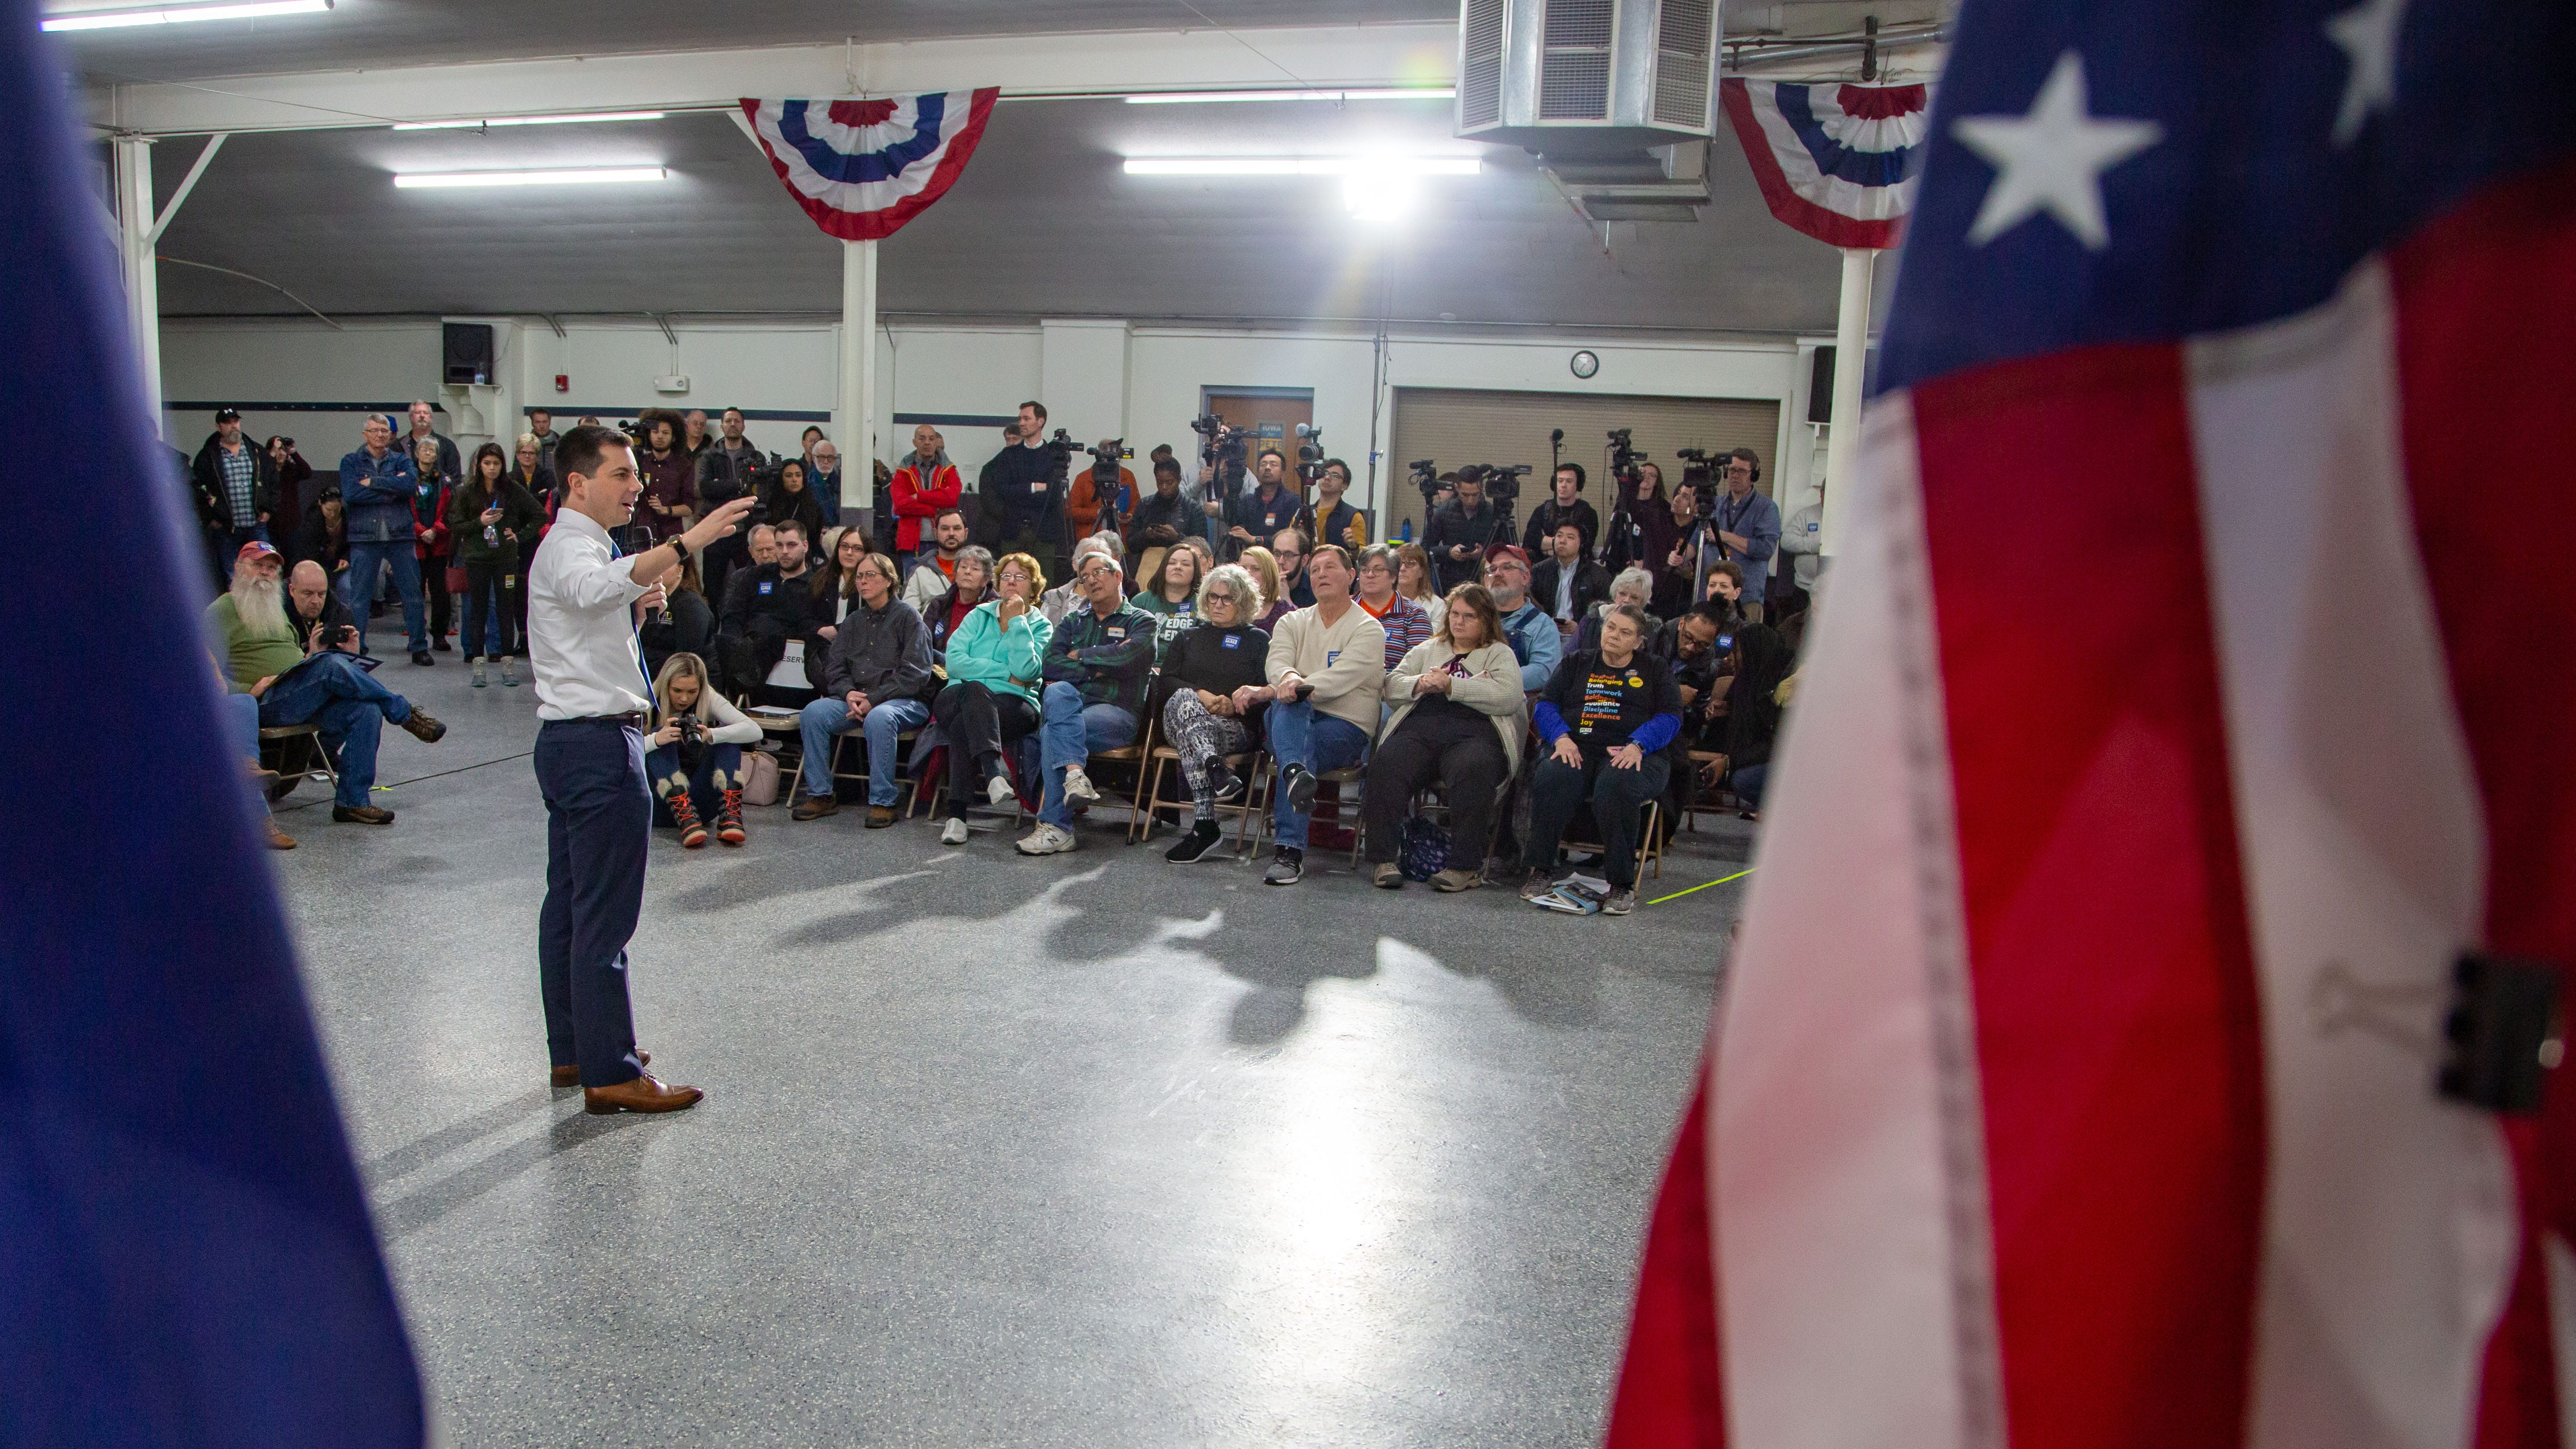 Photos: Pete Buttigieg speaks during a campaign event in Boone